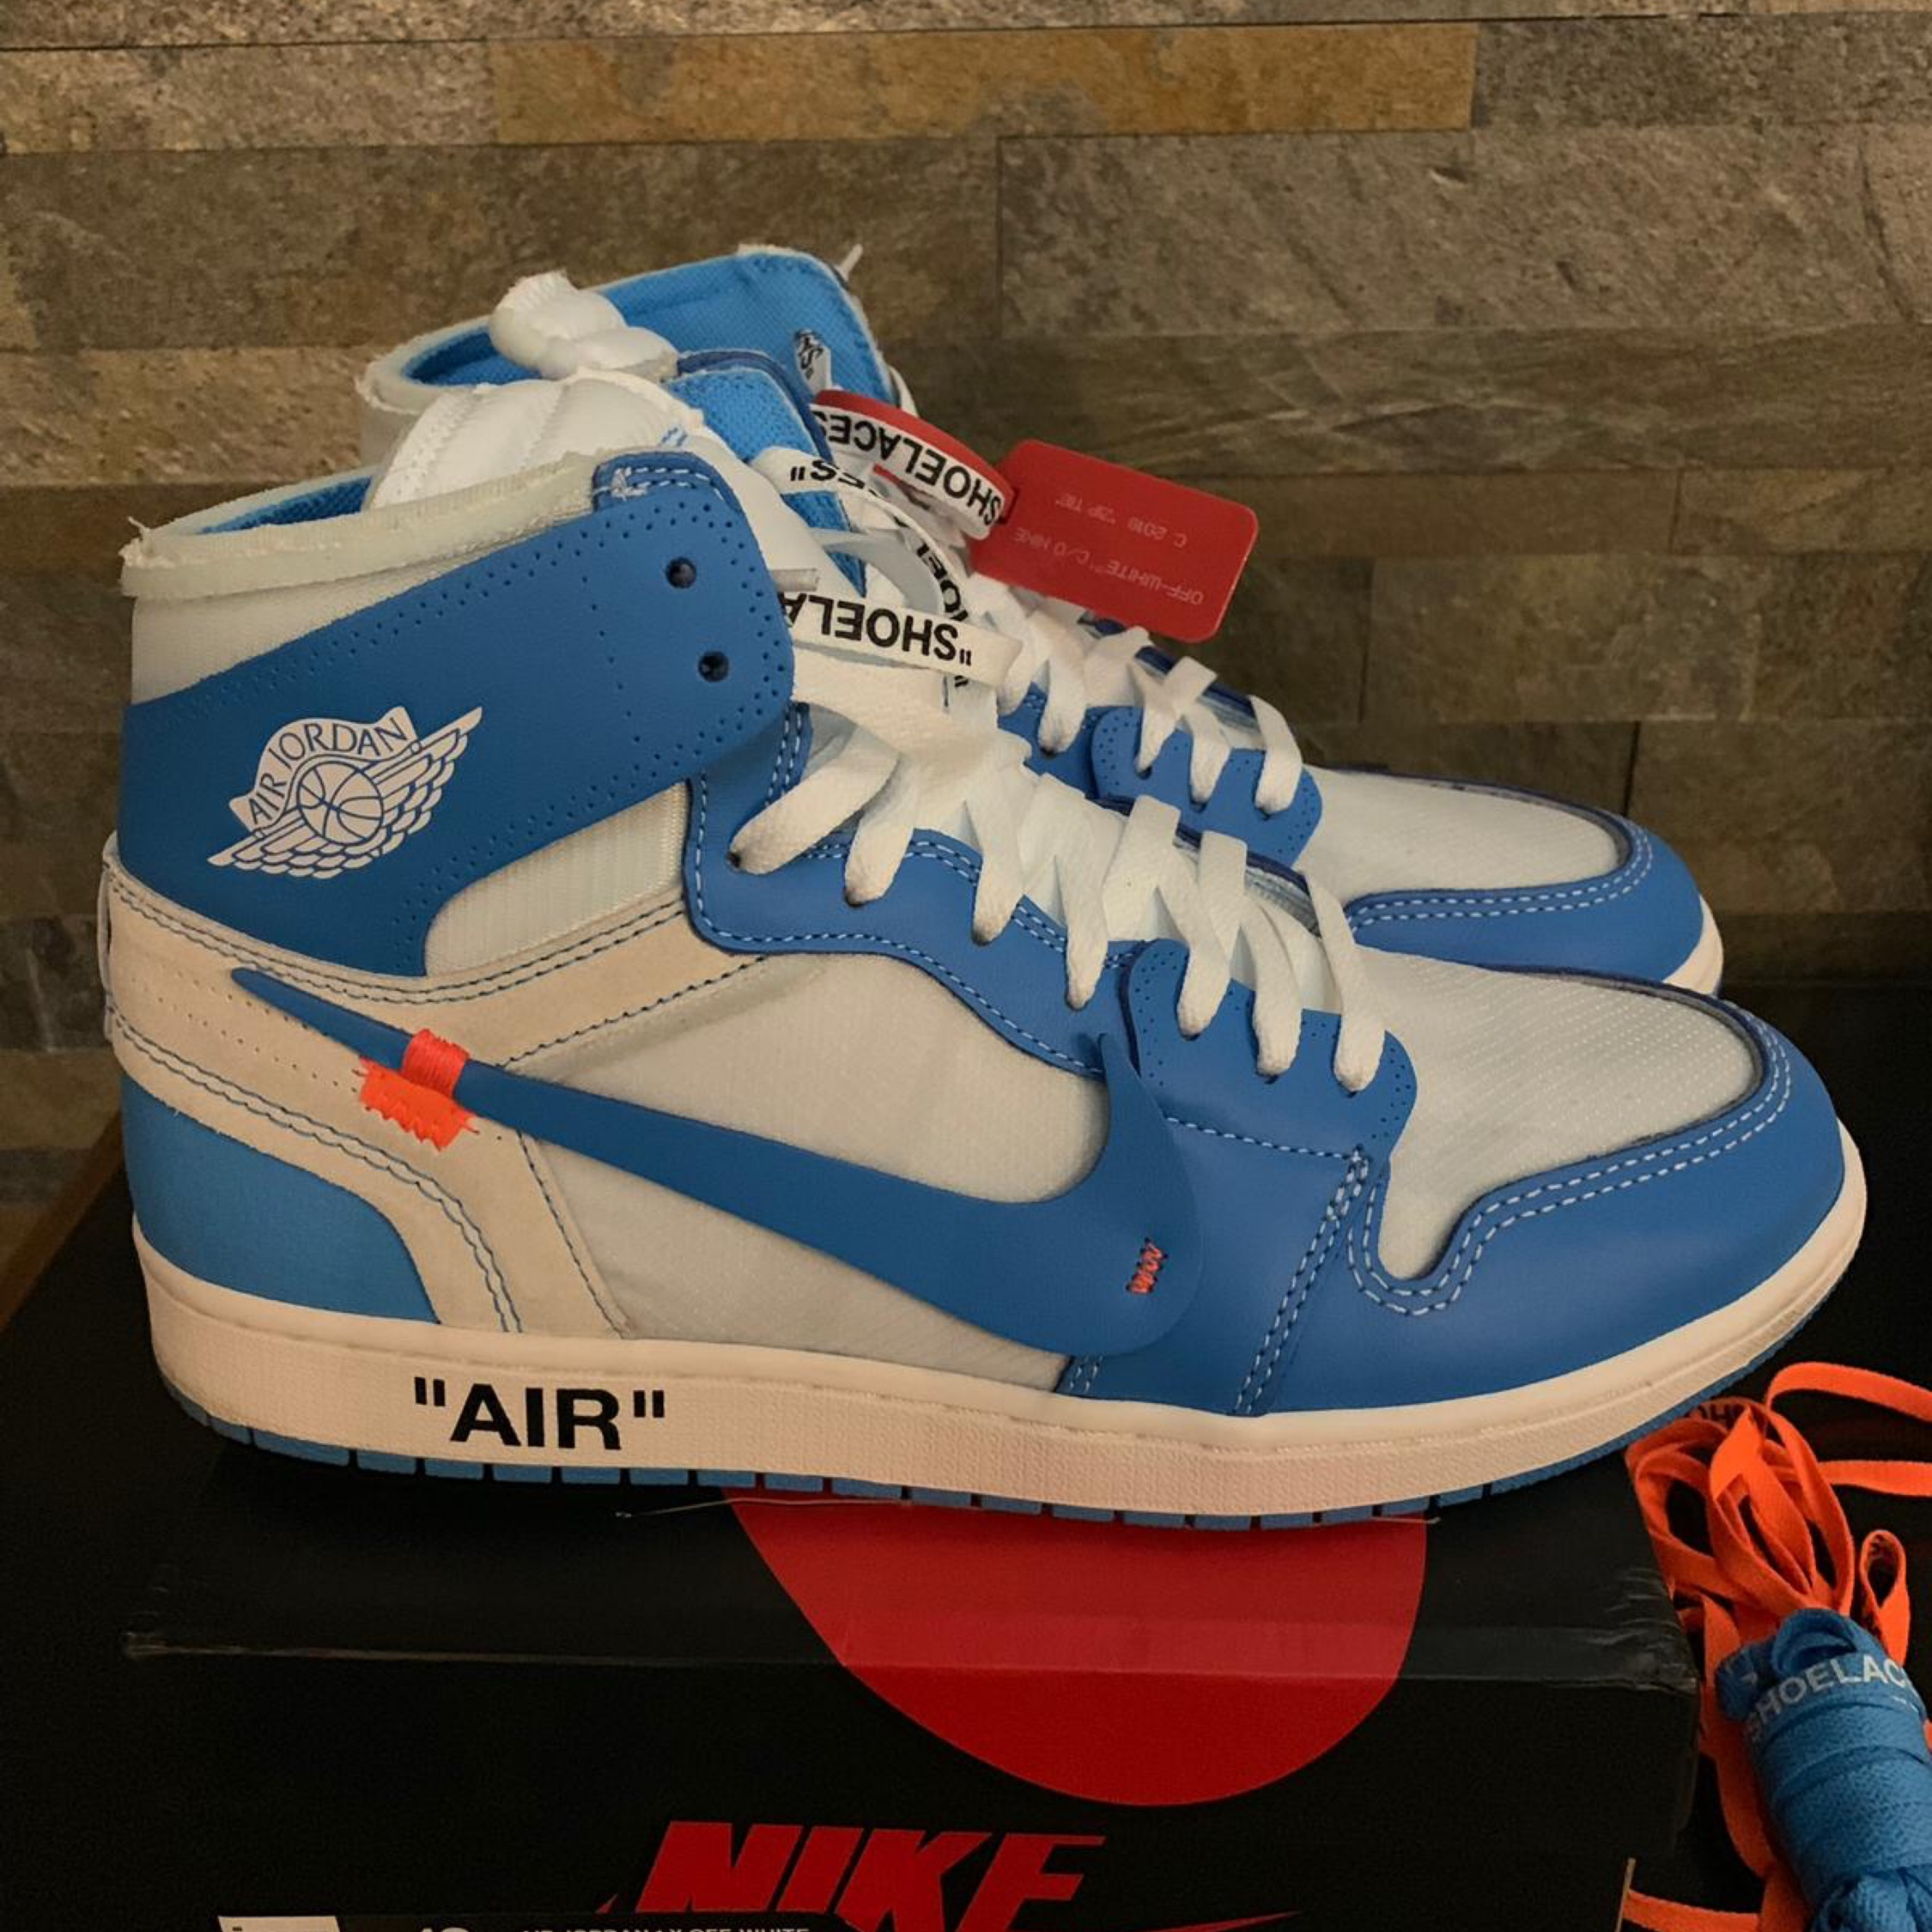 separation shoes ea779 31f7e Nike X Off White Jordan 1 Retro High Unc